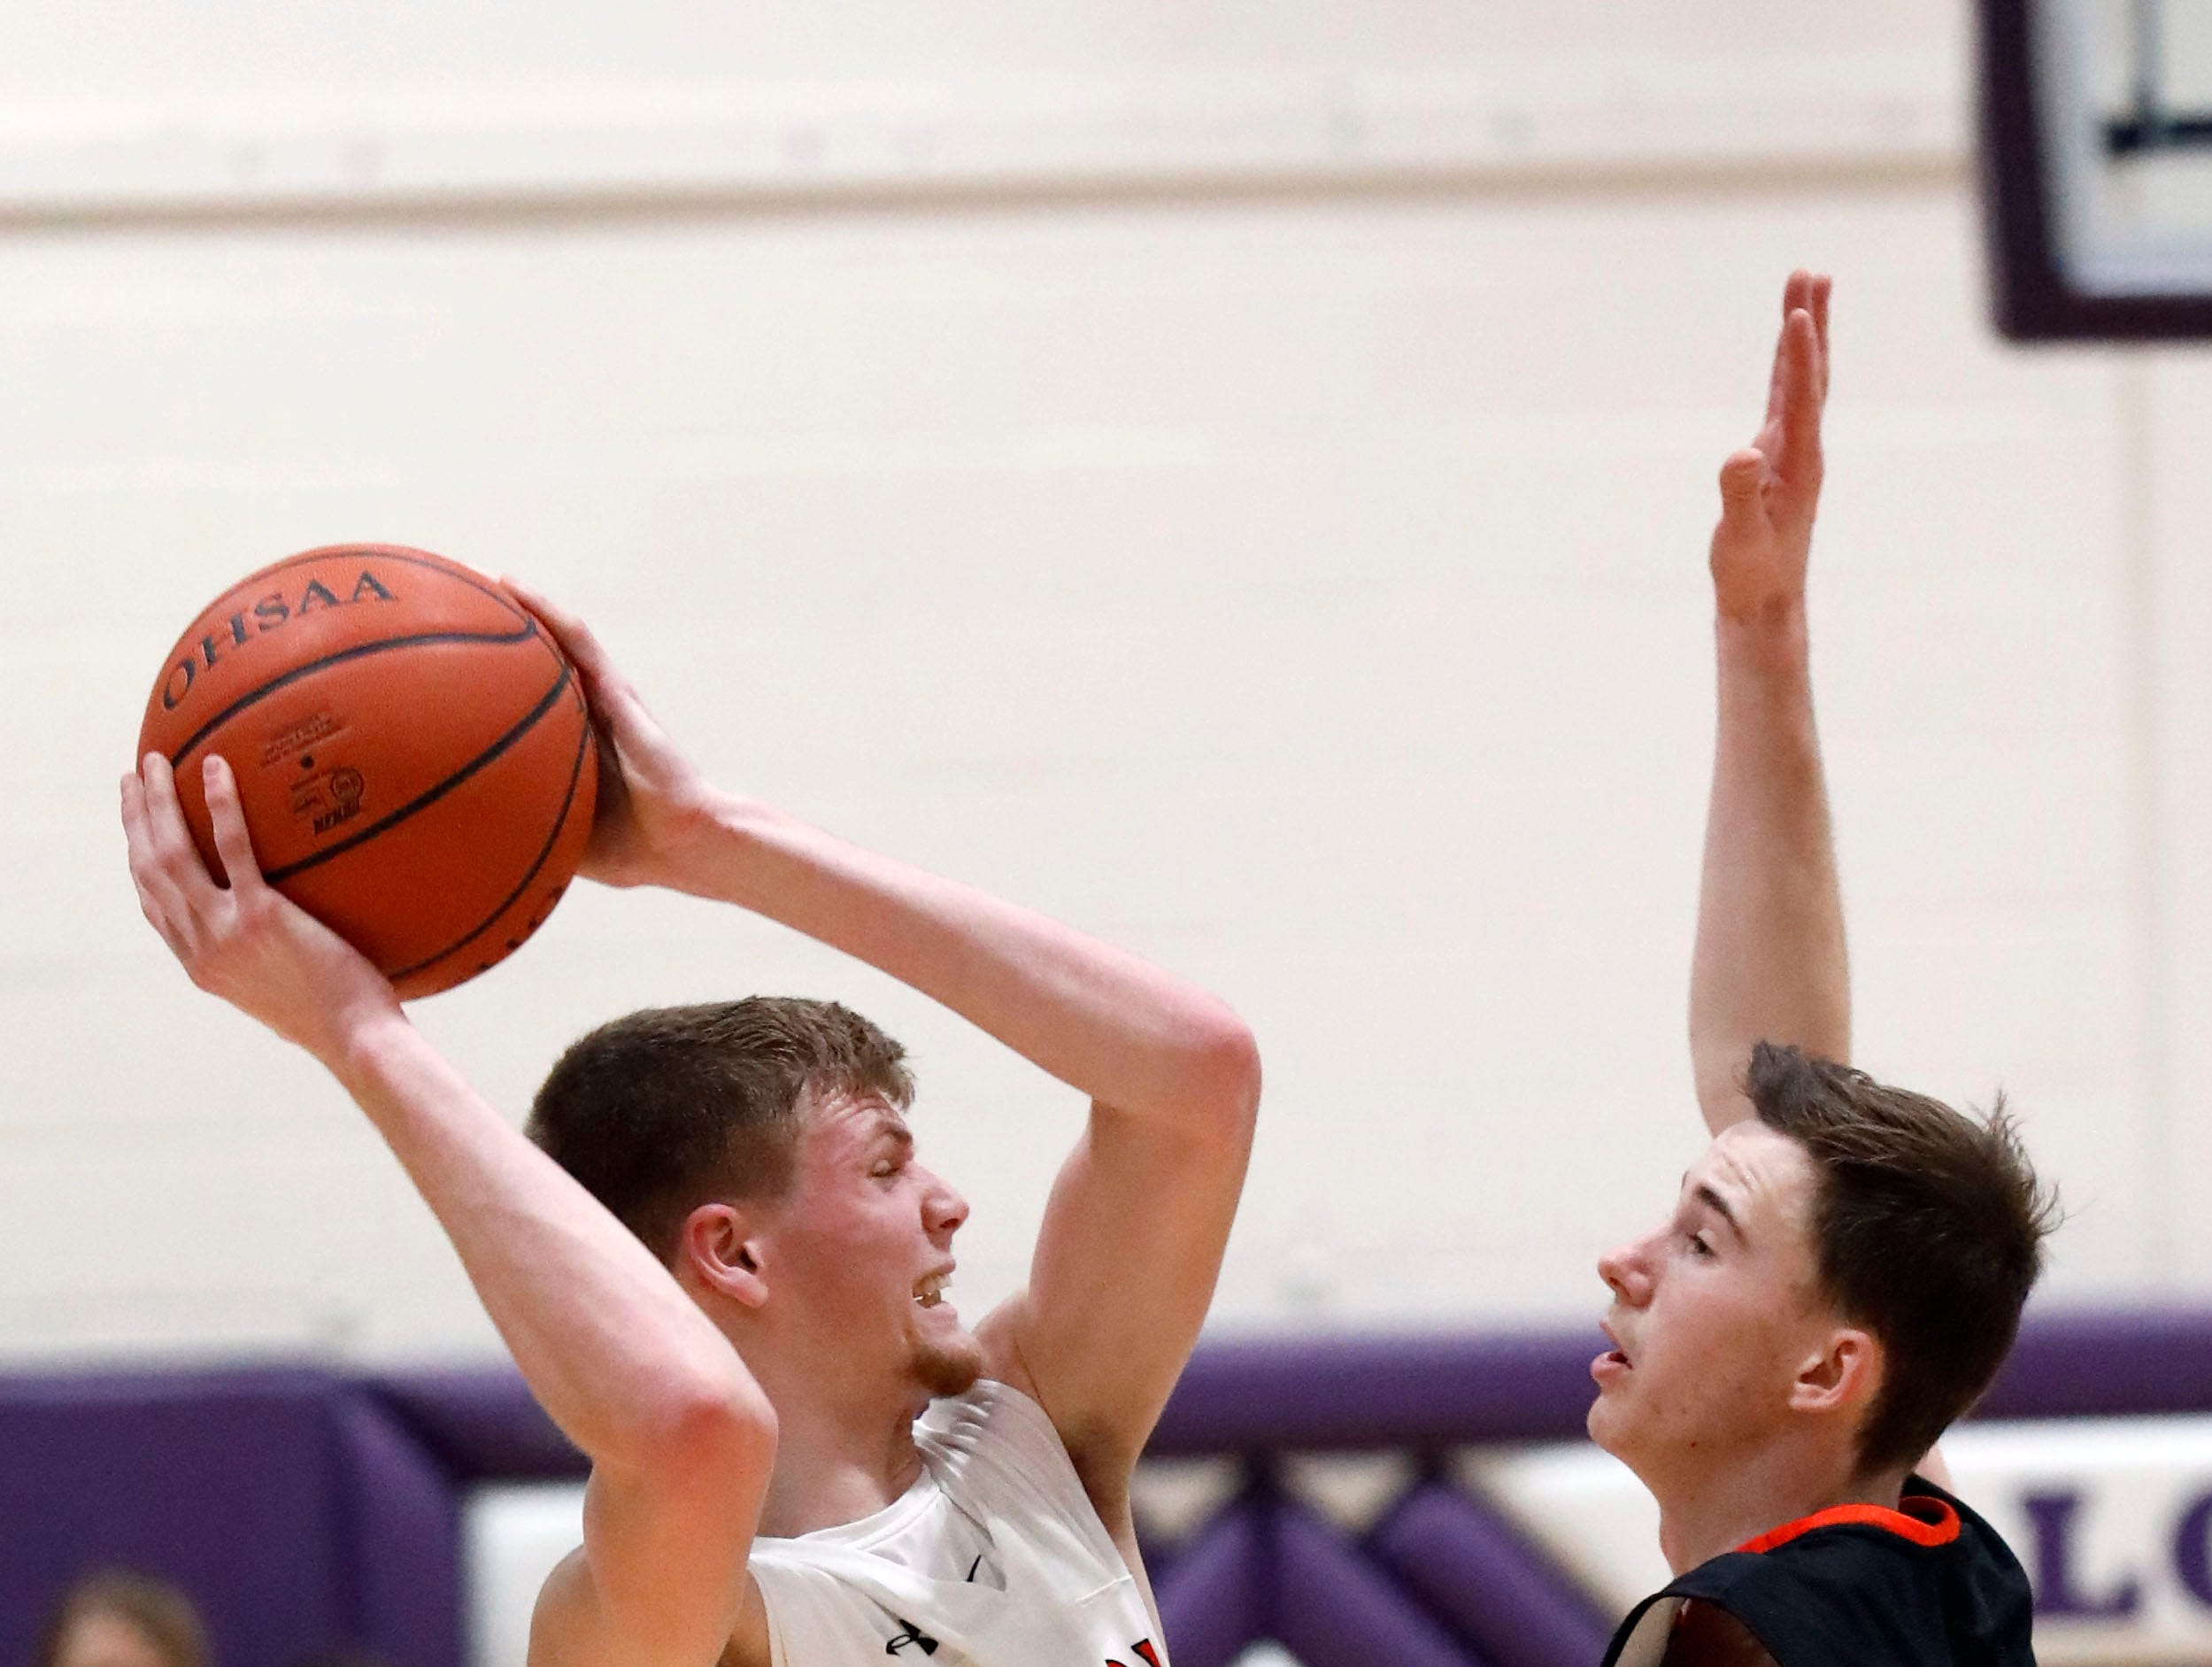 Fairfield Union's Chase Poston looks for an open teammate as he's guarded by Marietta's Mark Duckworth during Saturday's game, Feb. 23, 2019, at Logan High School in Logan. The Falcons defeated Marietta 48-33.